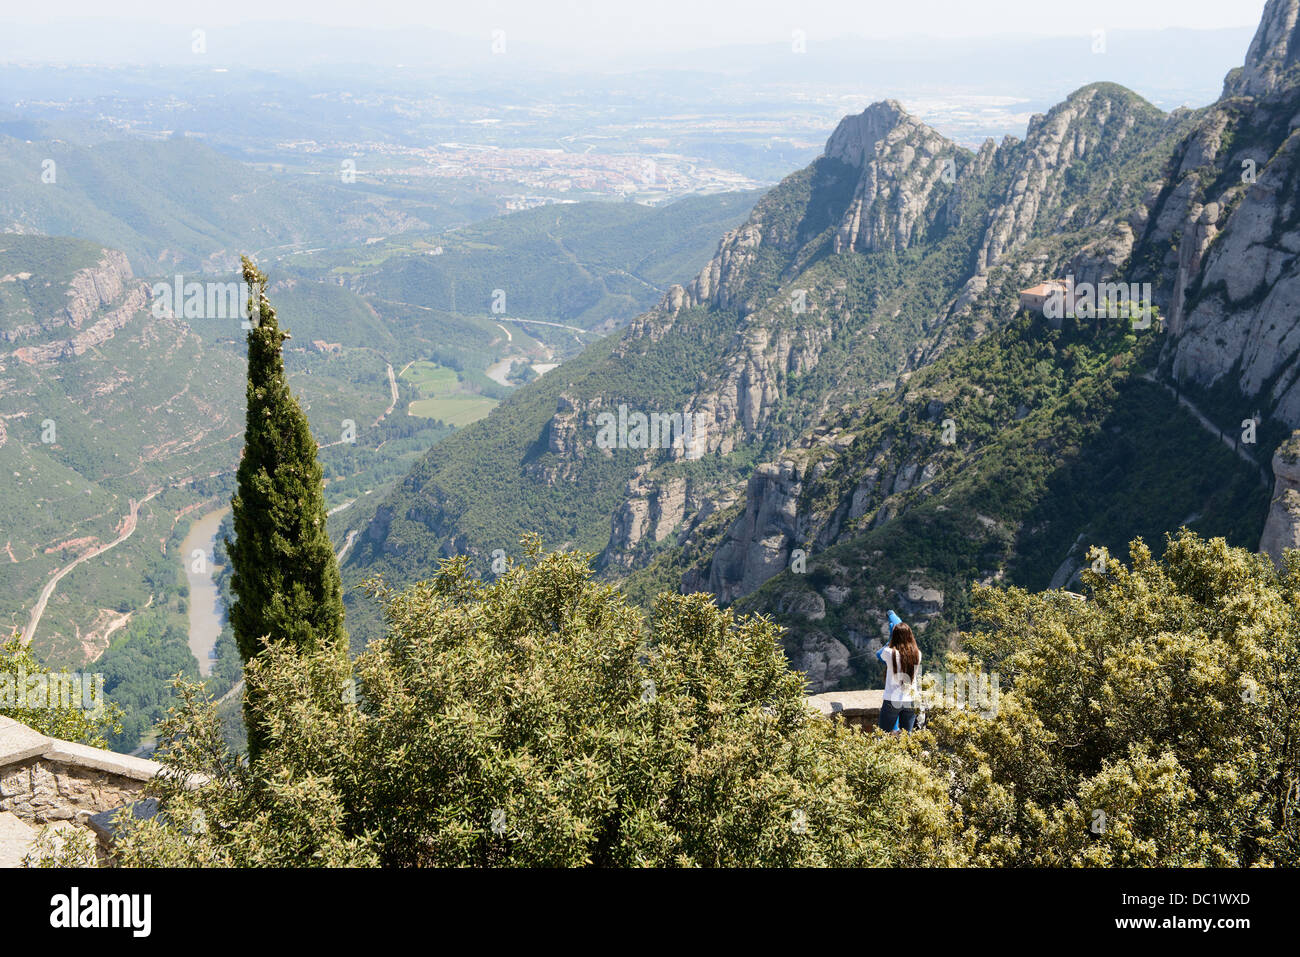 Young female tourist enjoying the view of montserrat, Spain - Stock Image